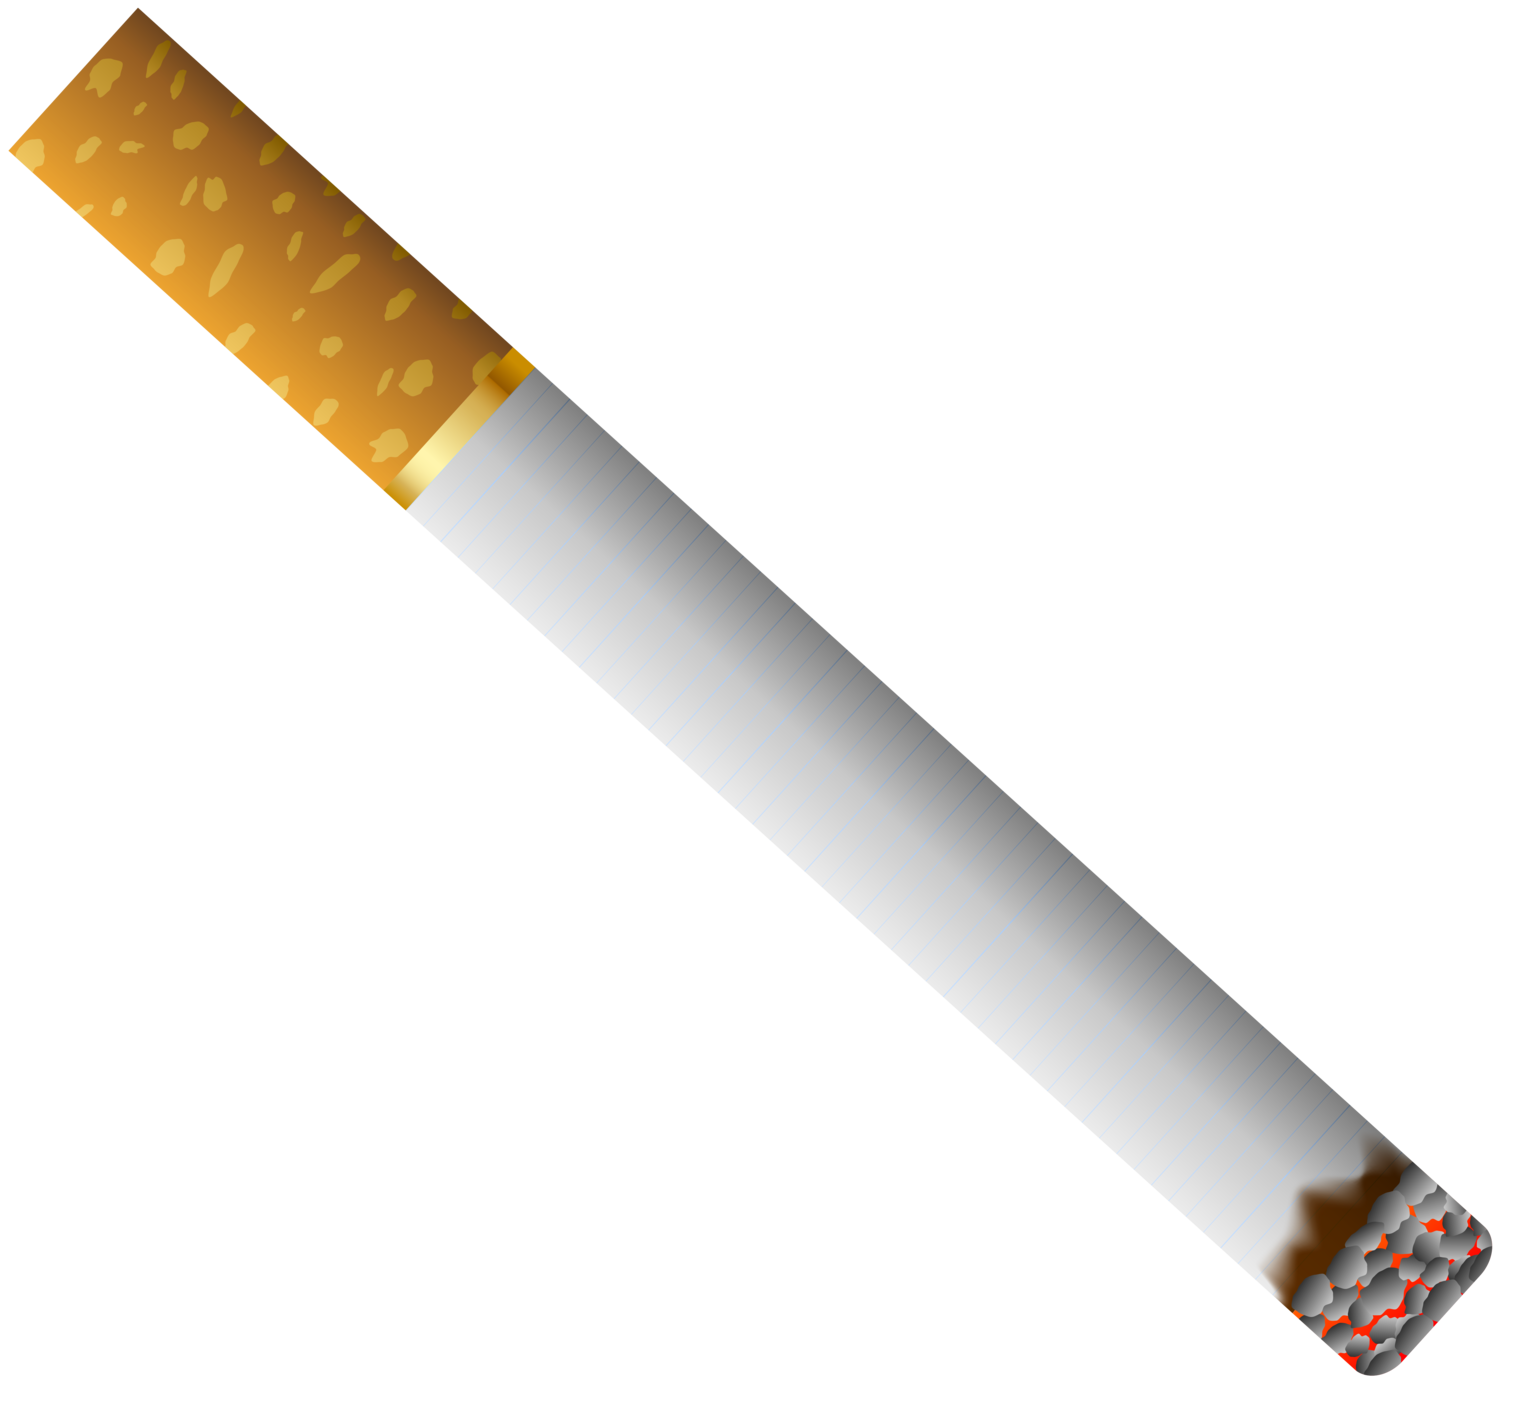 Cigarette png. With filter clipart